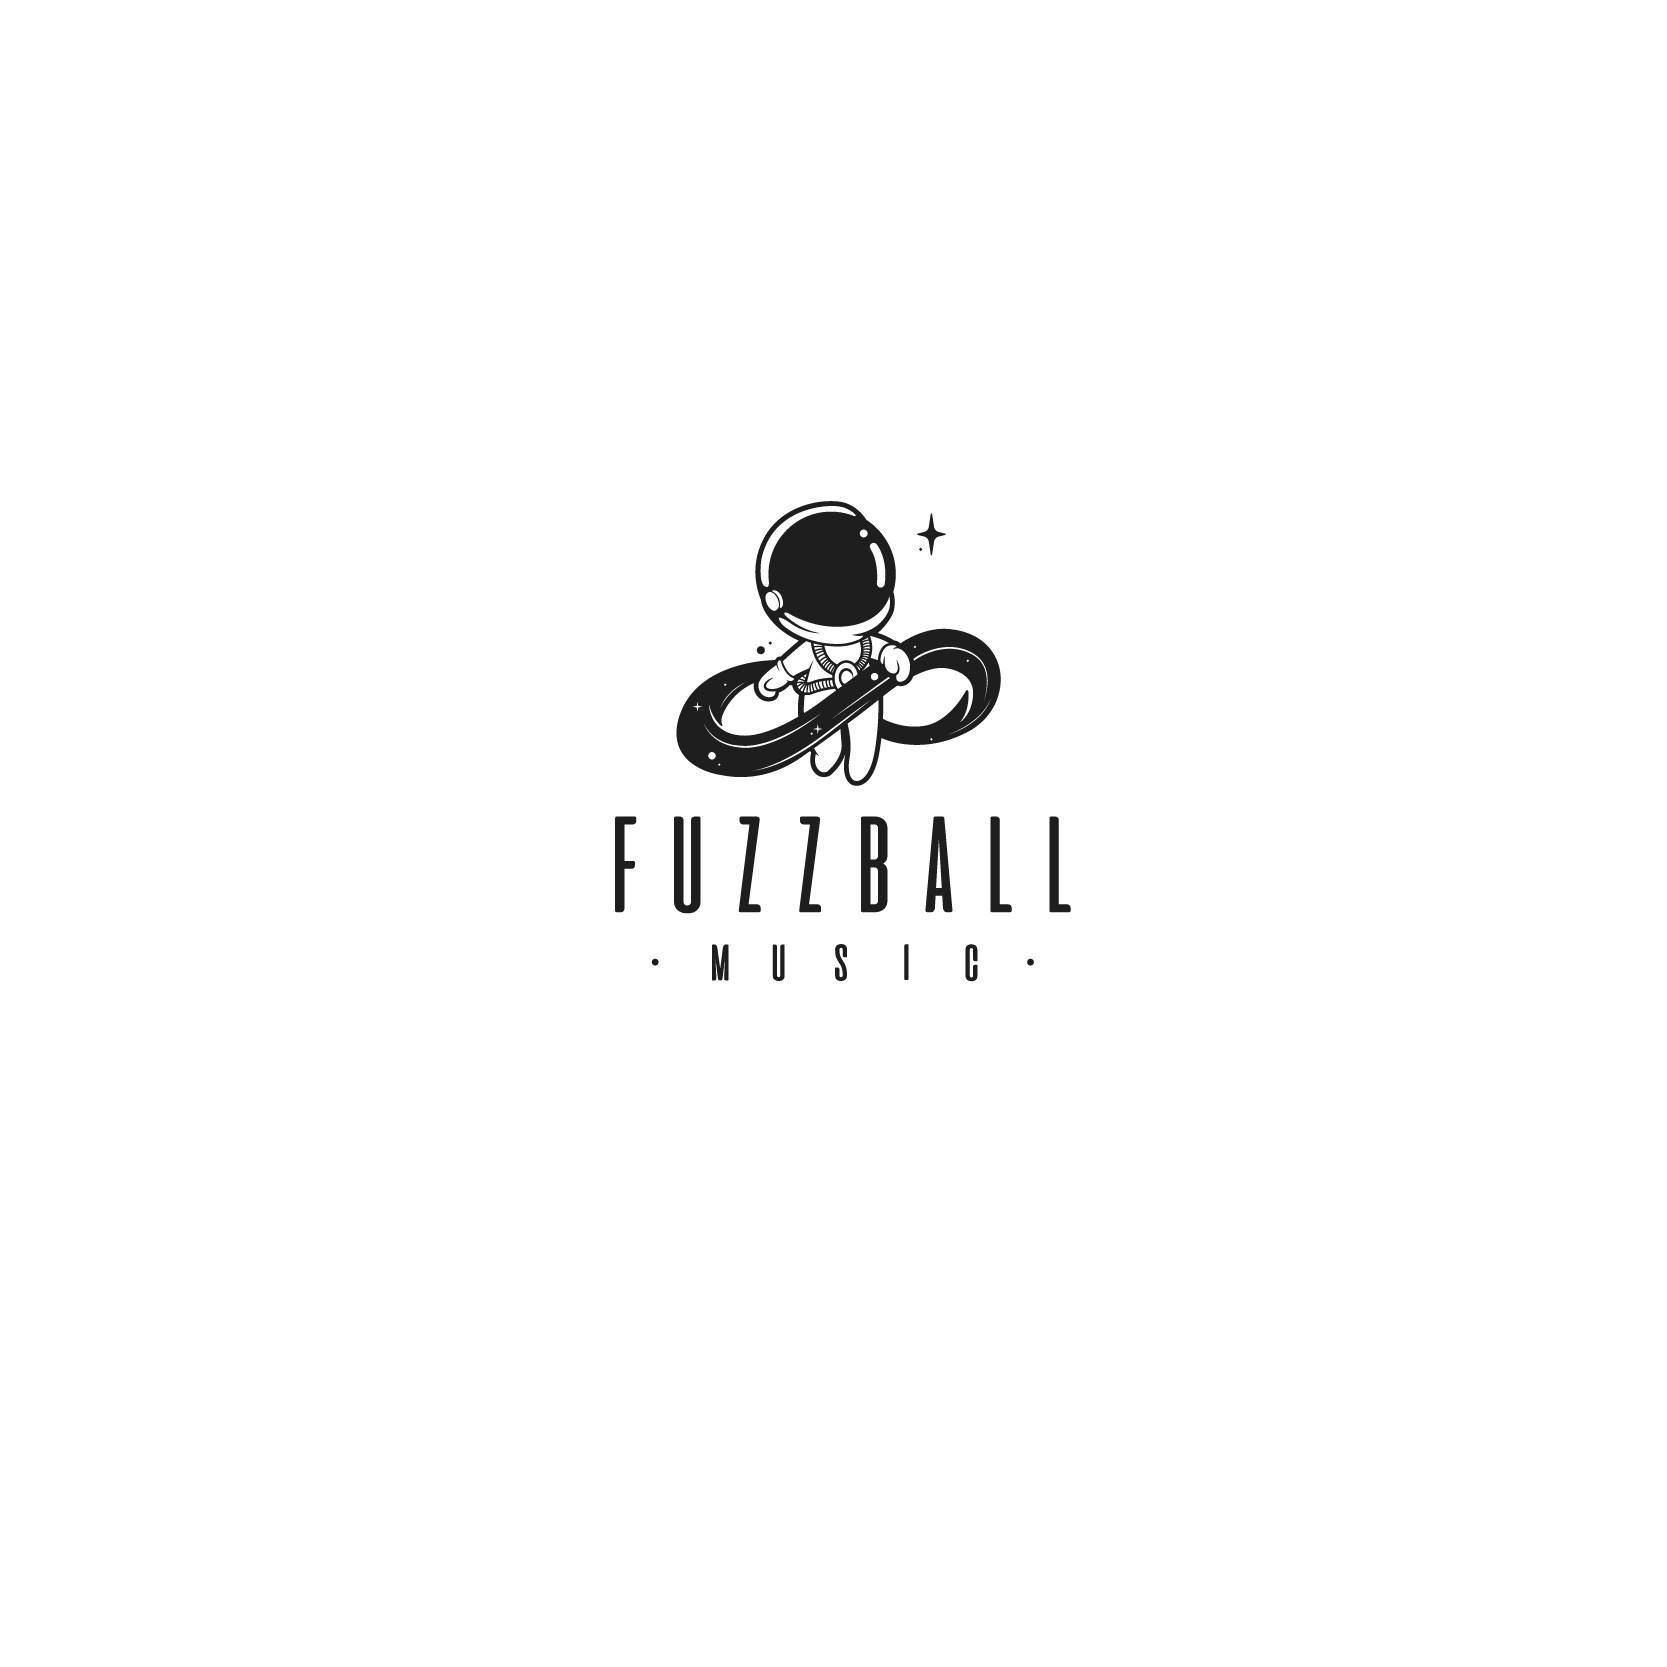 Fuzzball Music a custom music company is looking for a bright, comicbook/skateboarding inspired fun logo